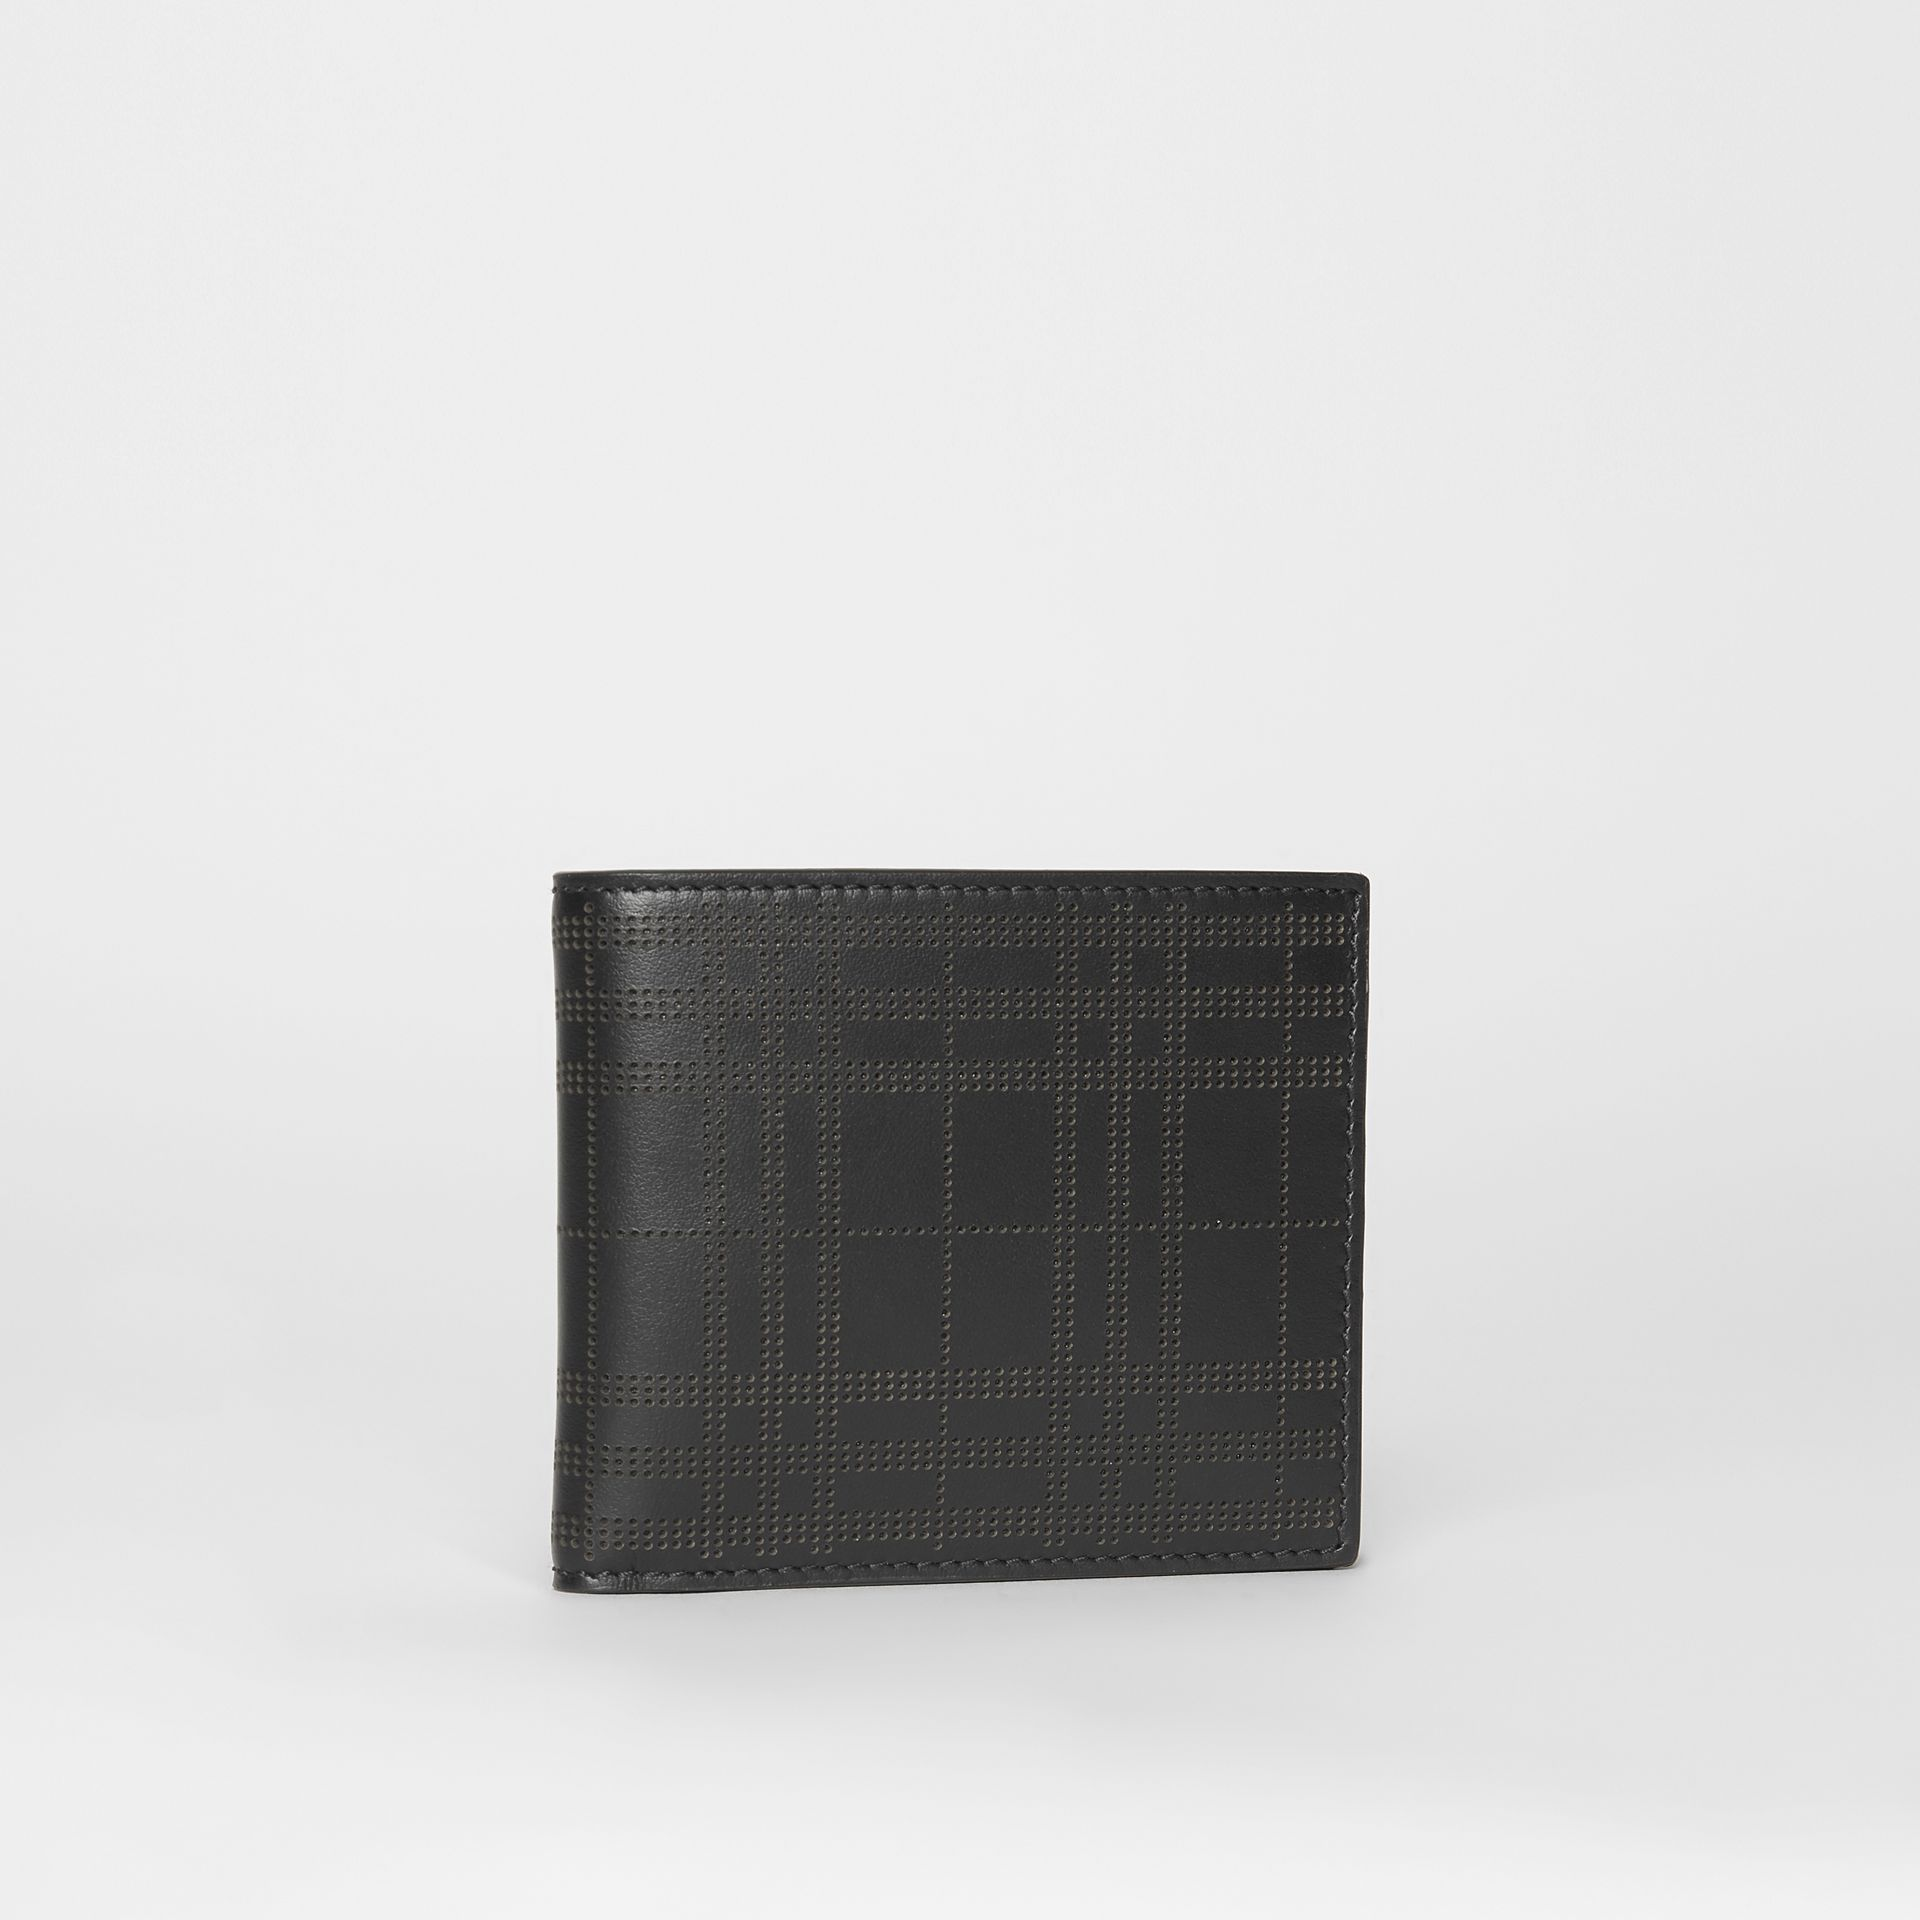 Perforated Check Leather International Bifold Wallet in Black - Men | Burberry Canada - gallery image 3